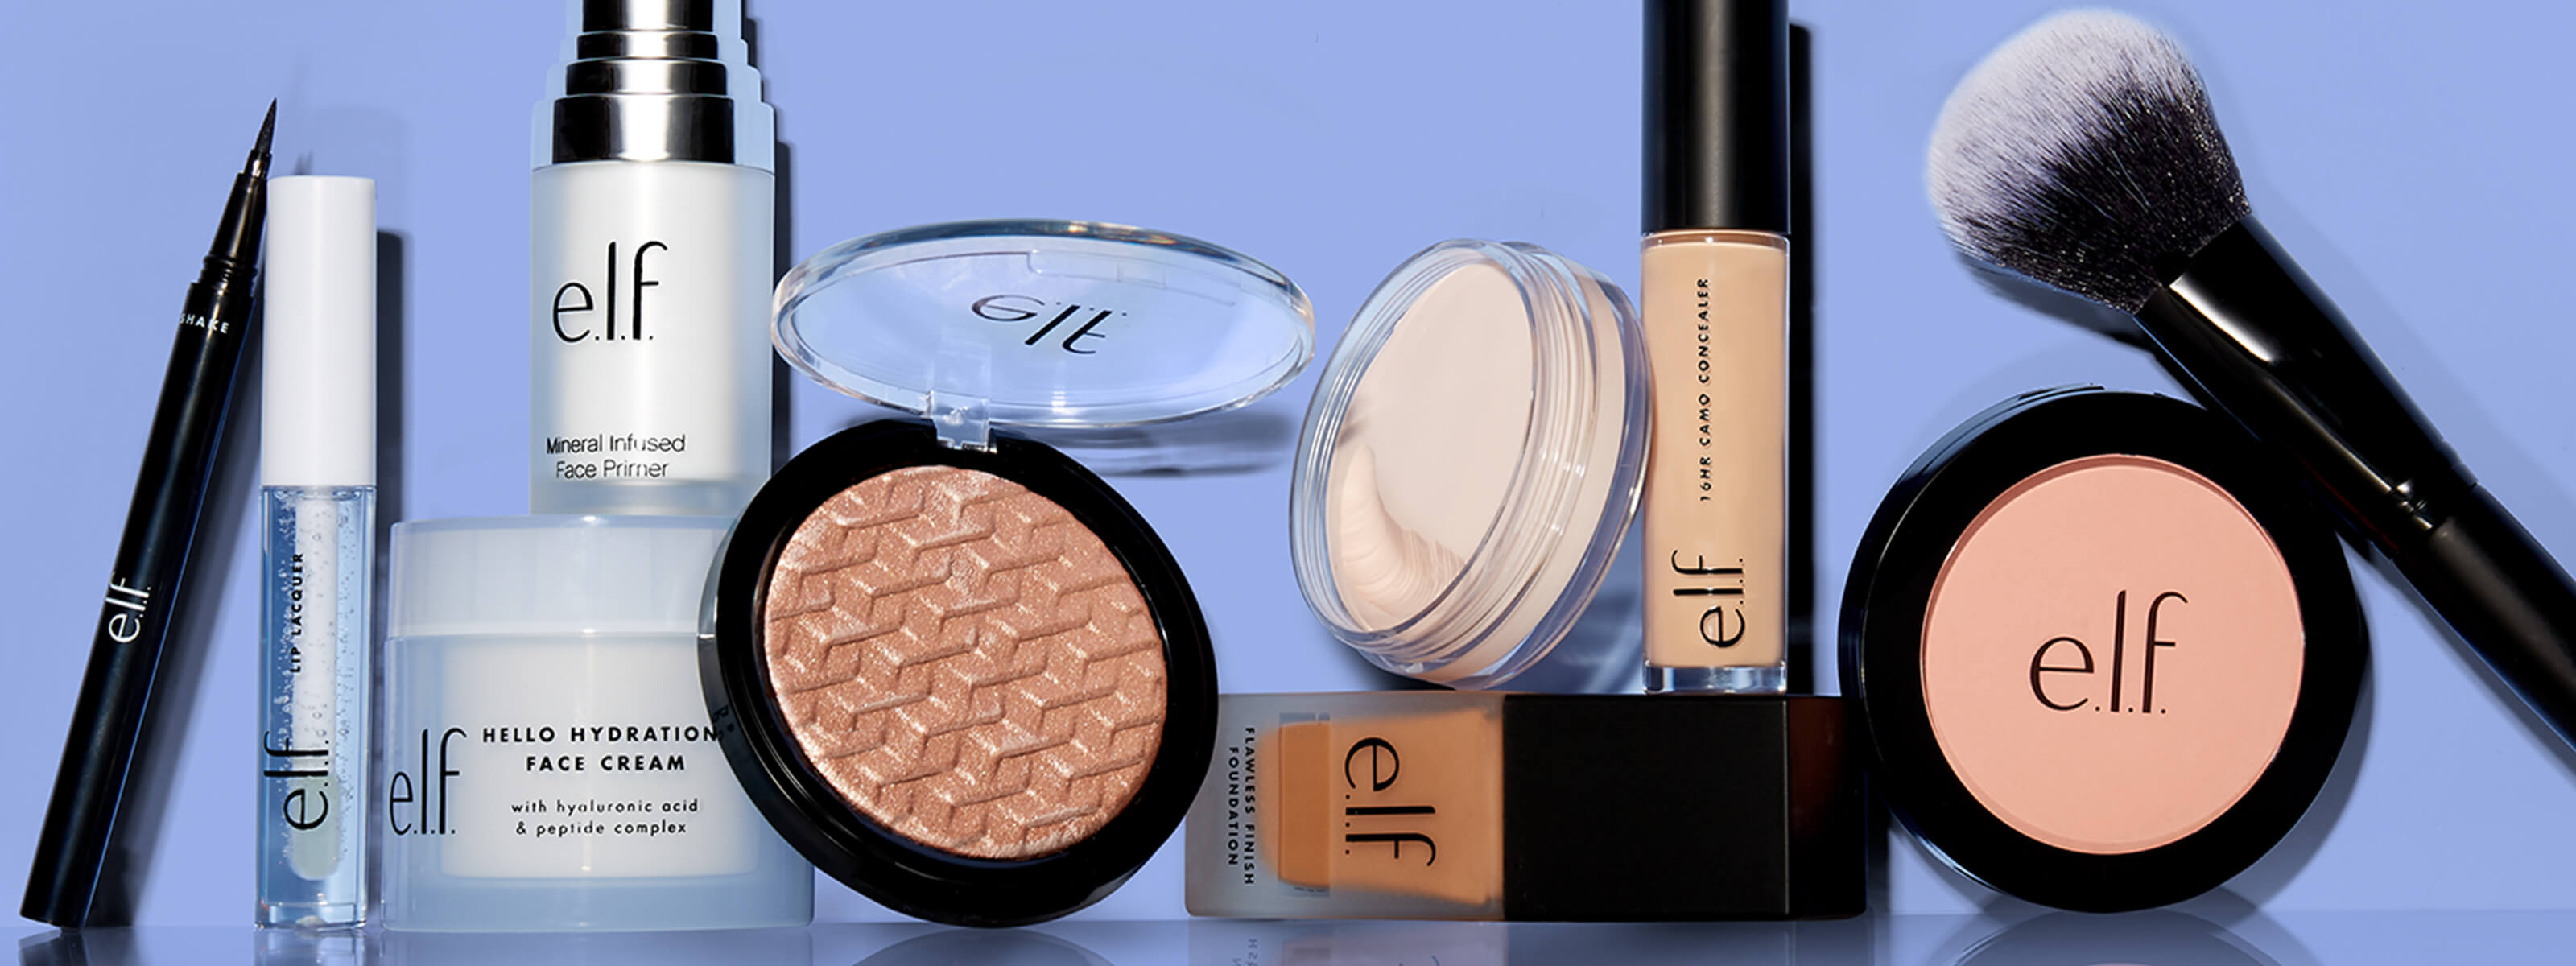 Elf cosmetics logo clipart jpg library library Affordable Makeup & Beauty Products | e.l.f. Cosmetics- Cruelty Free jpg library library